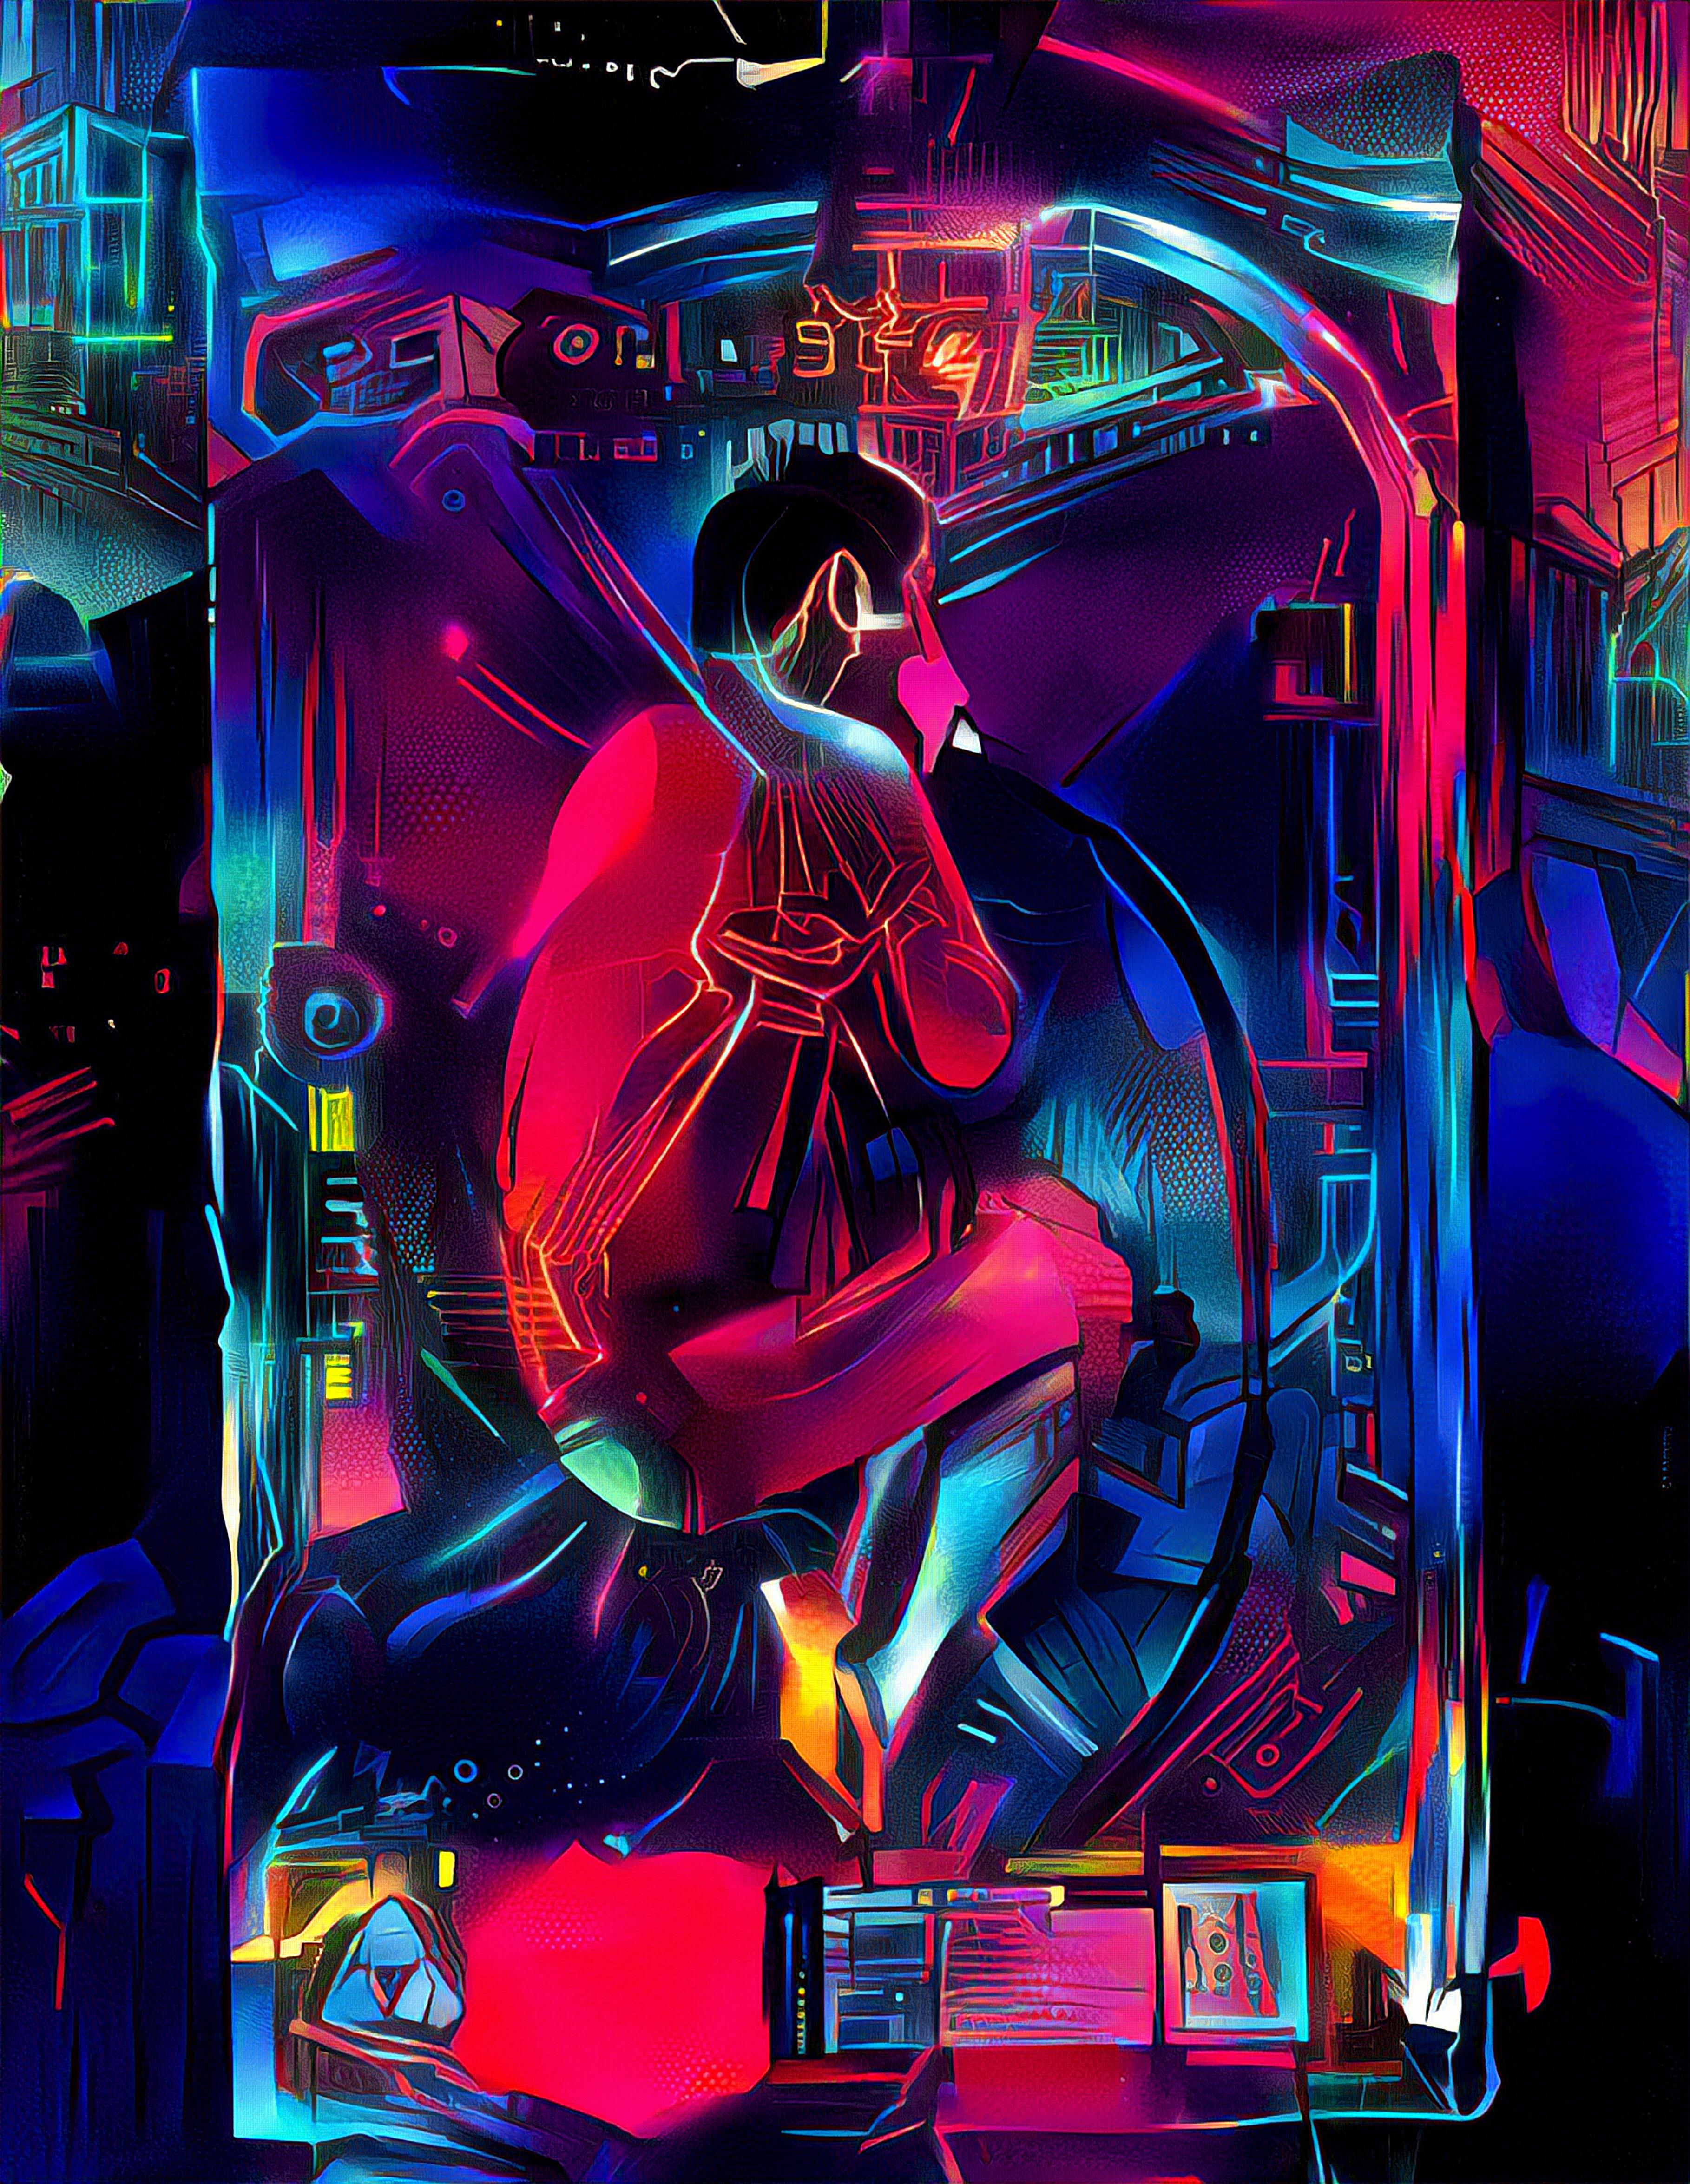 Altered Carbon Phone Wallpapers - Wallpaper Cave